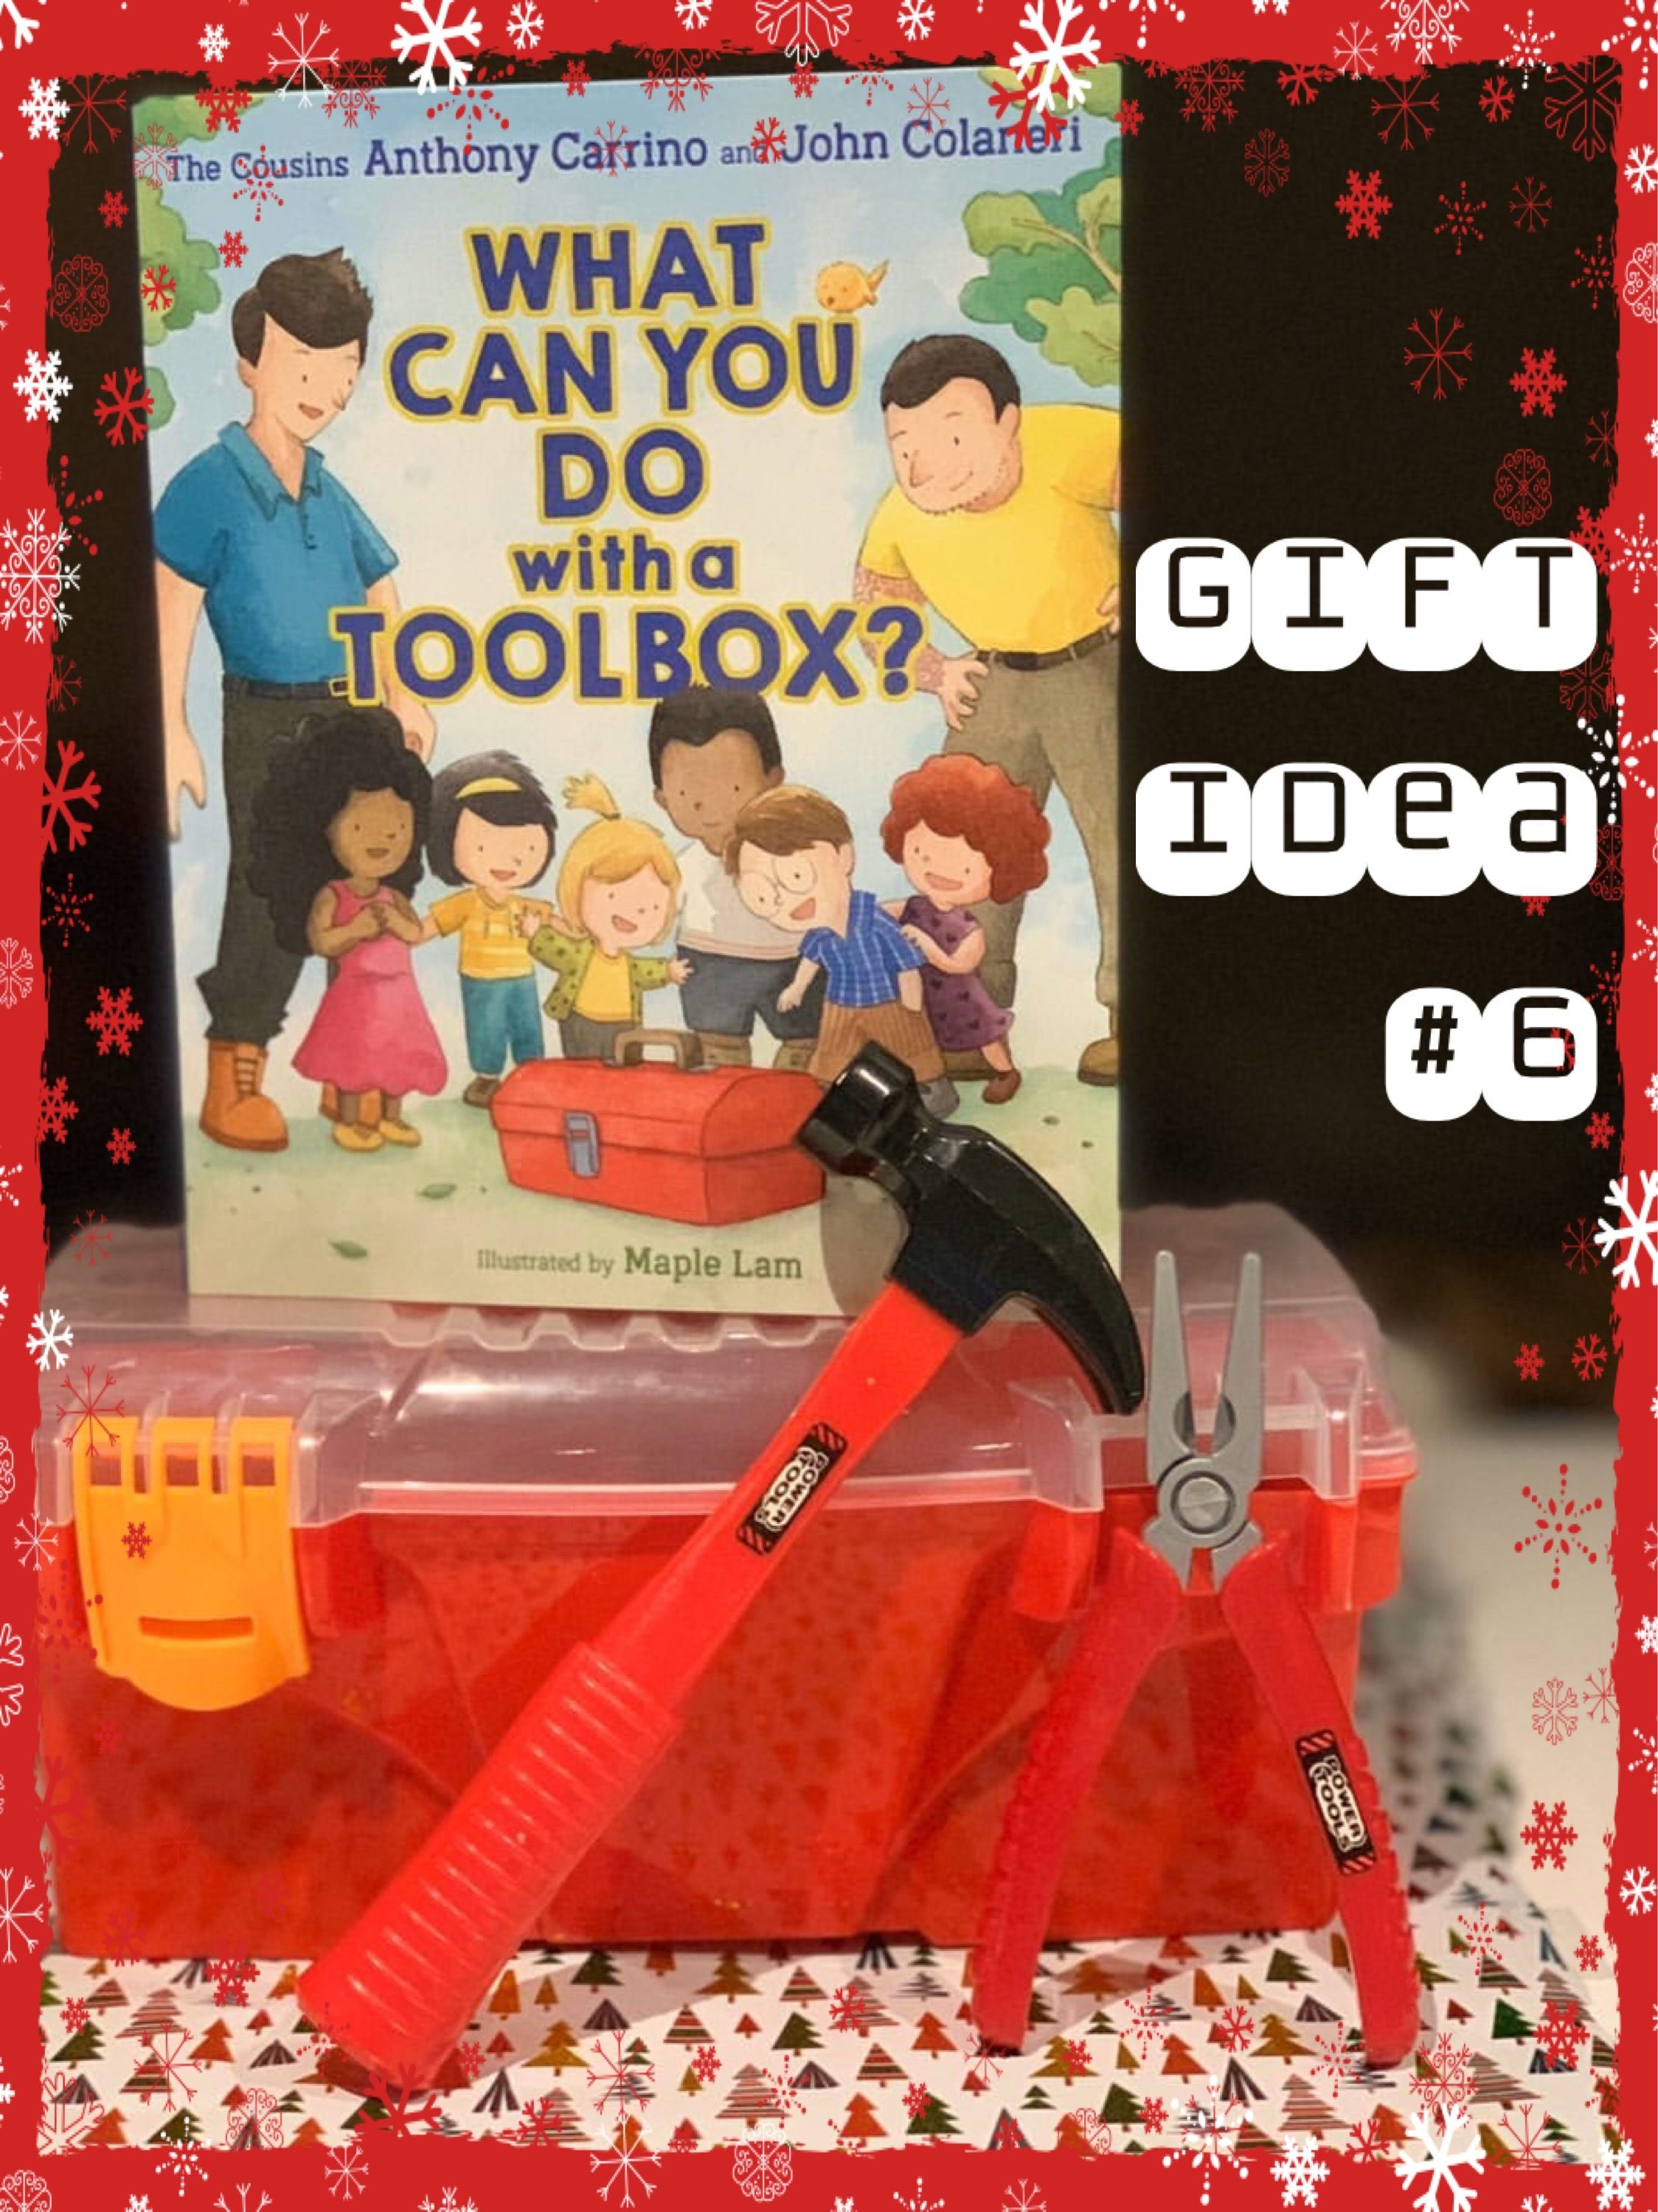 Gift for kids idea 6 builders kids book bookish